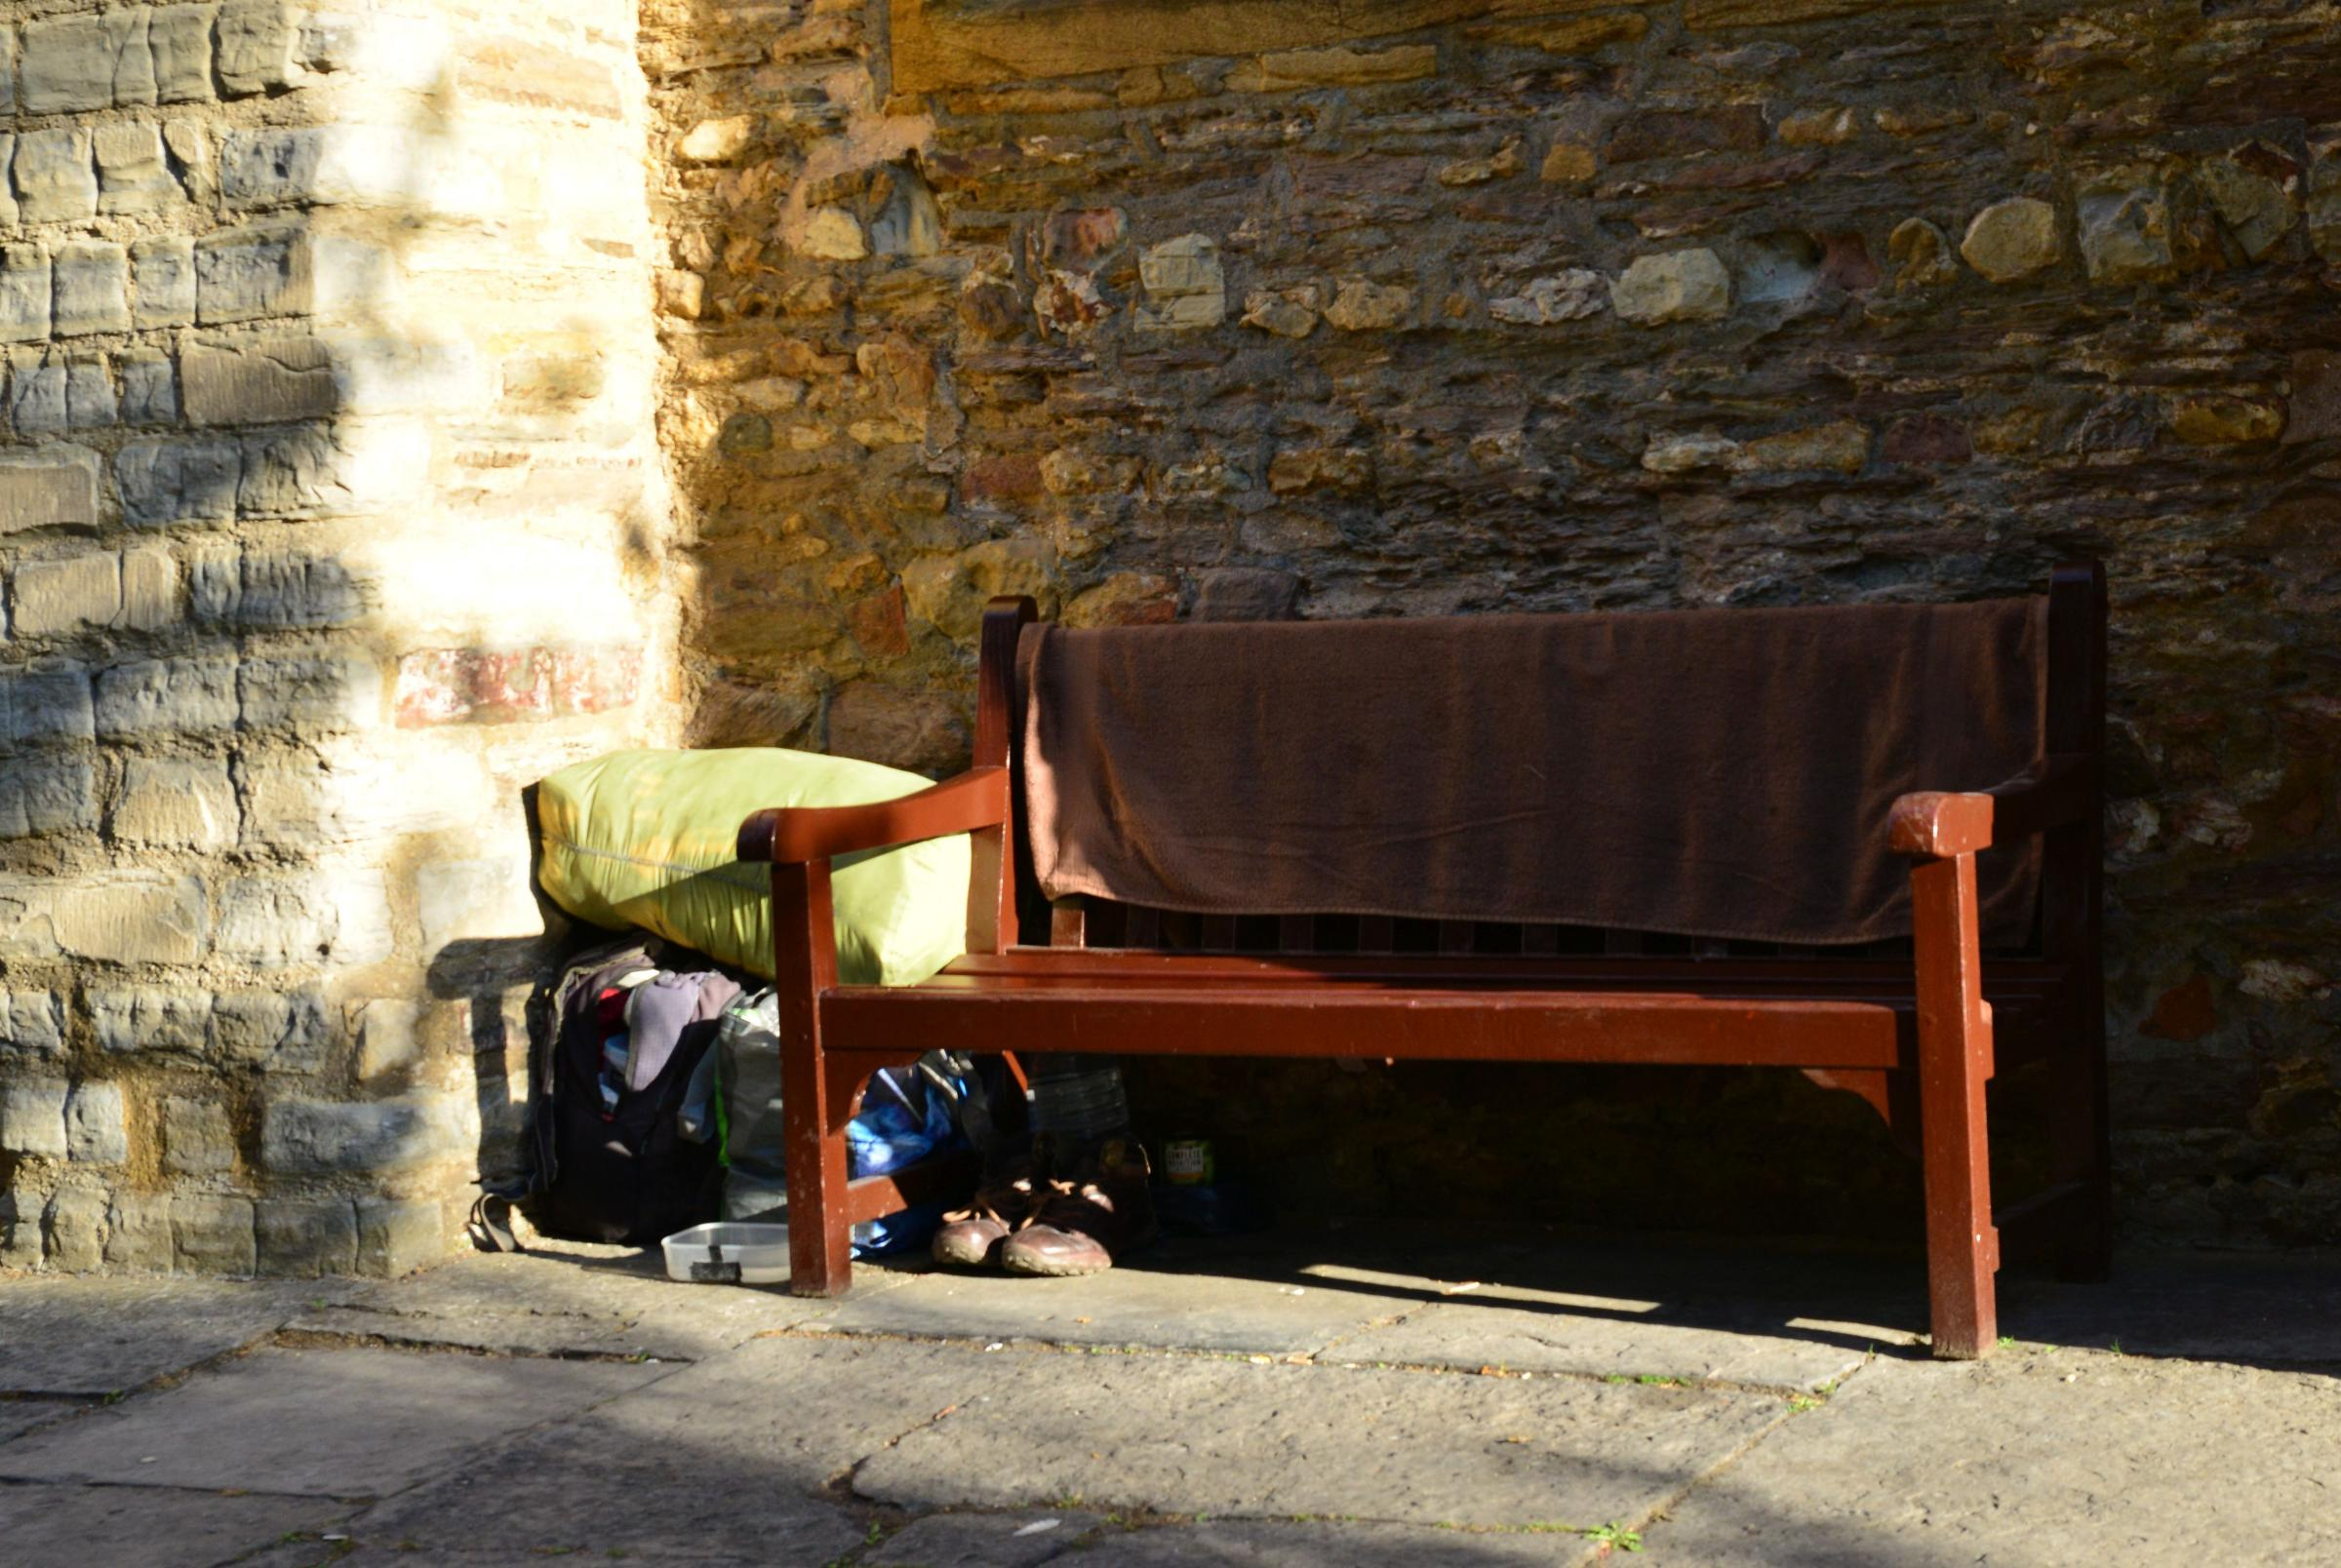 BELONGINGS: One rough sleeper's items tidied away behind a bench in Taunton